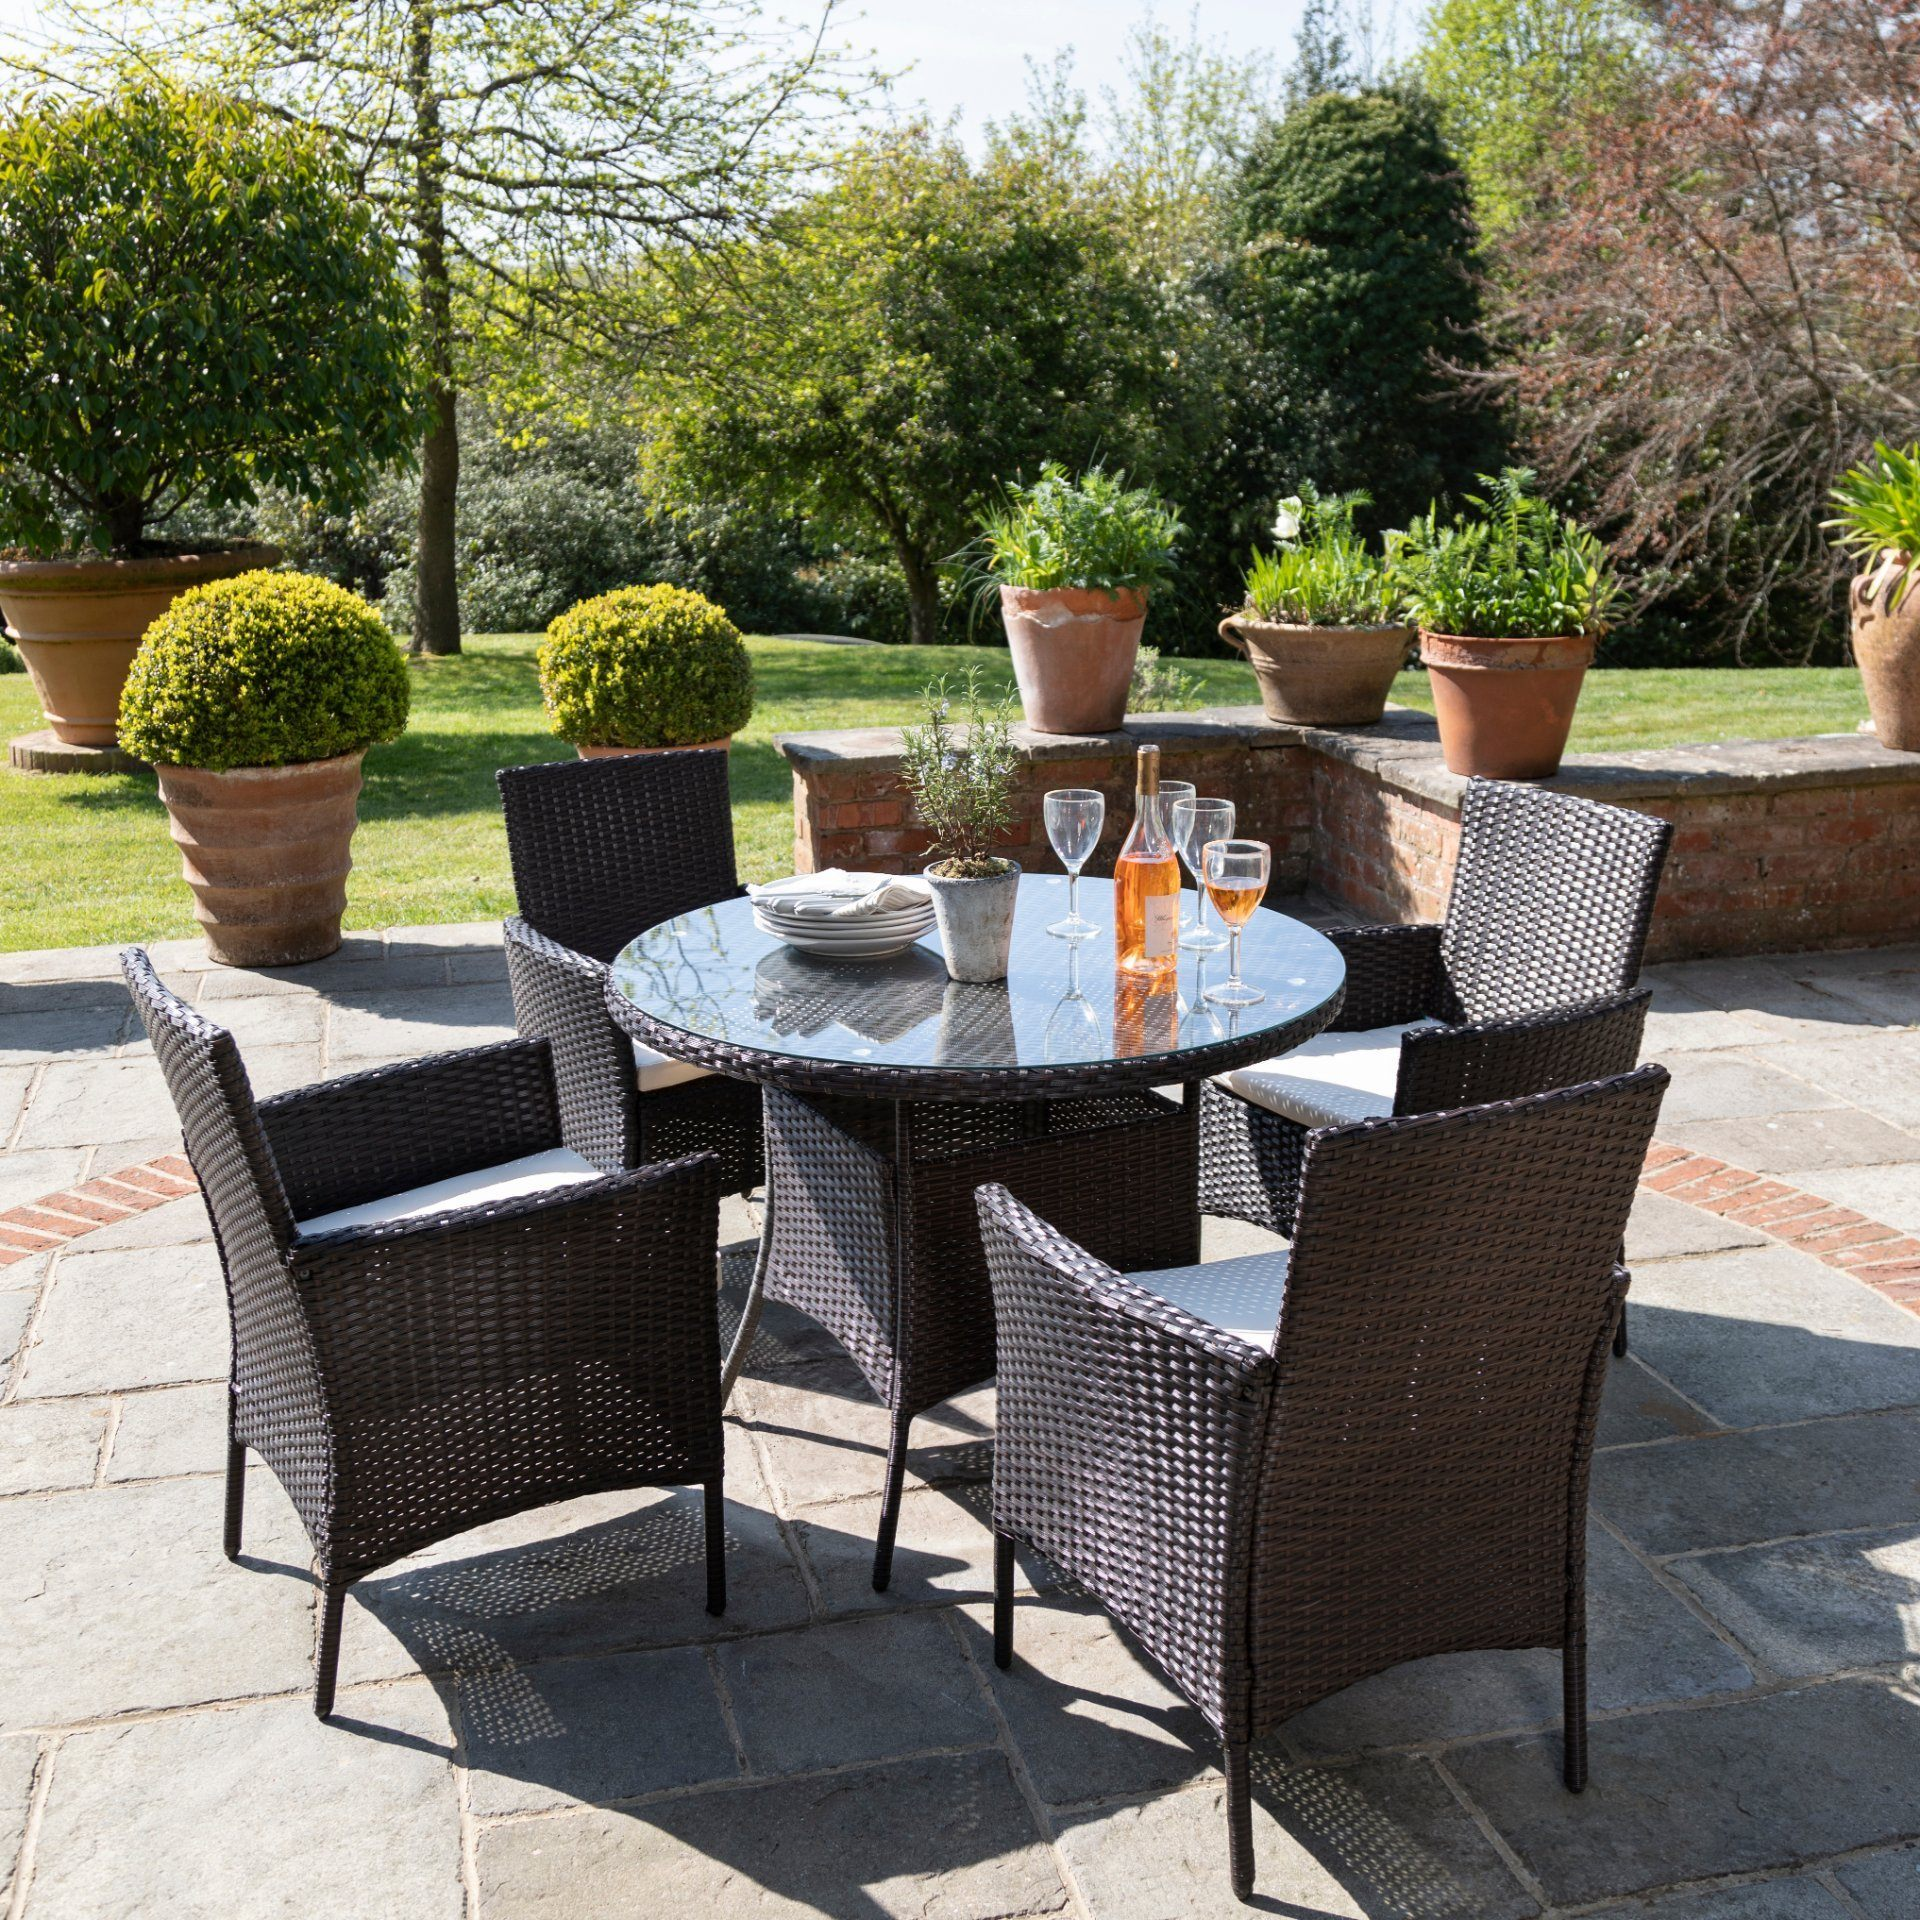 4 Seater Rattan Round Dining Set with Parasol - Rattan ...